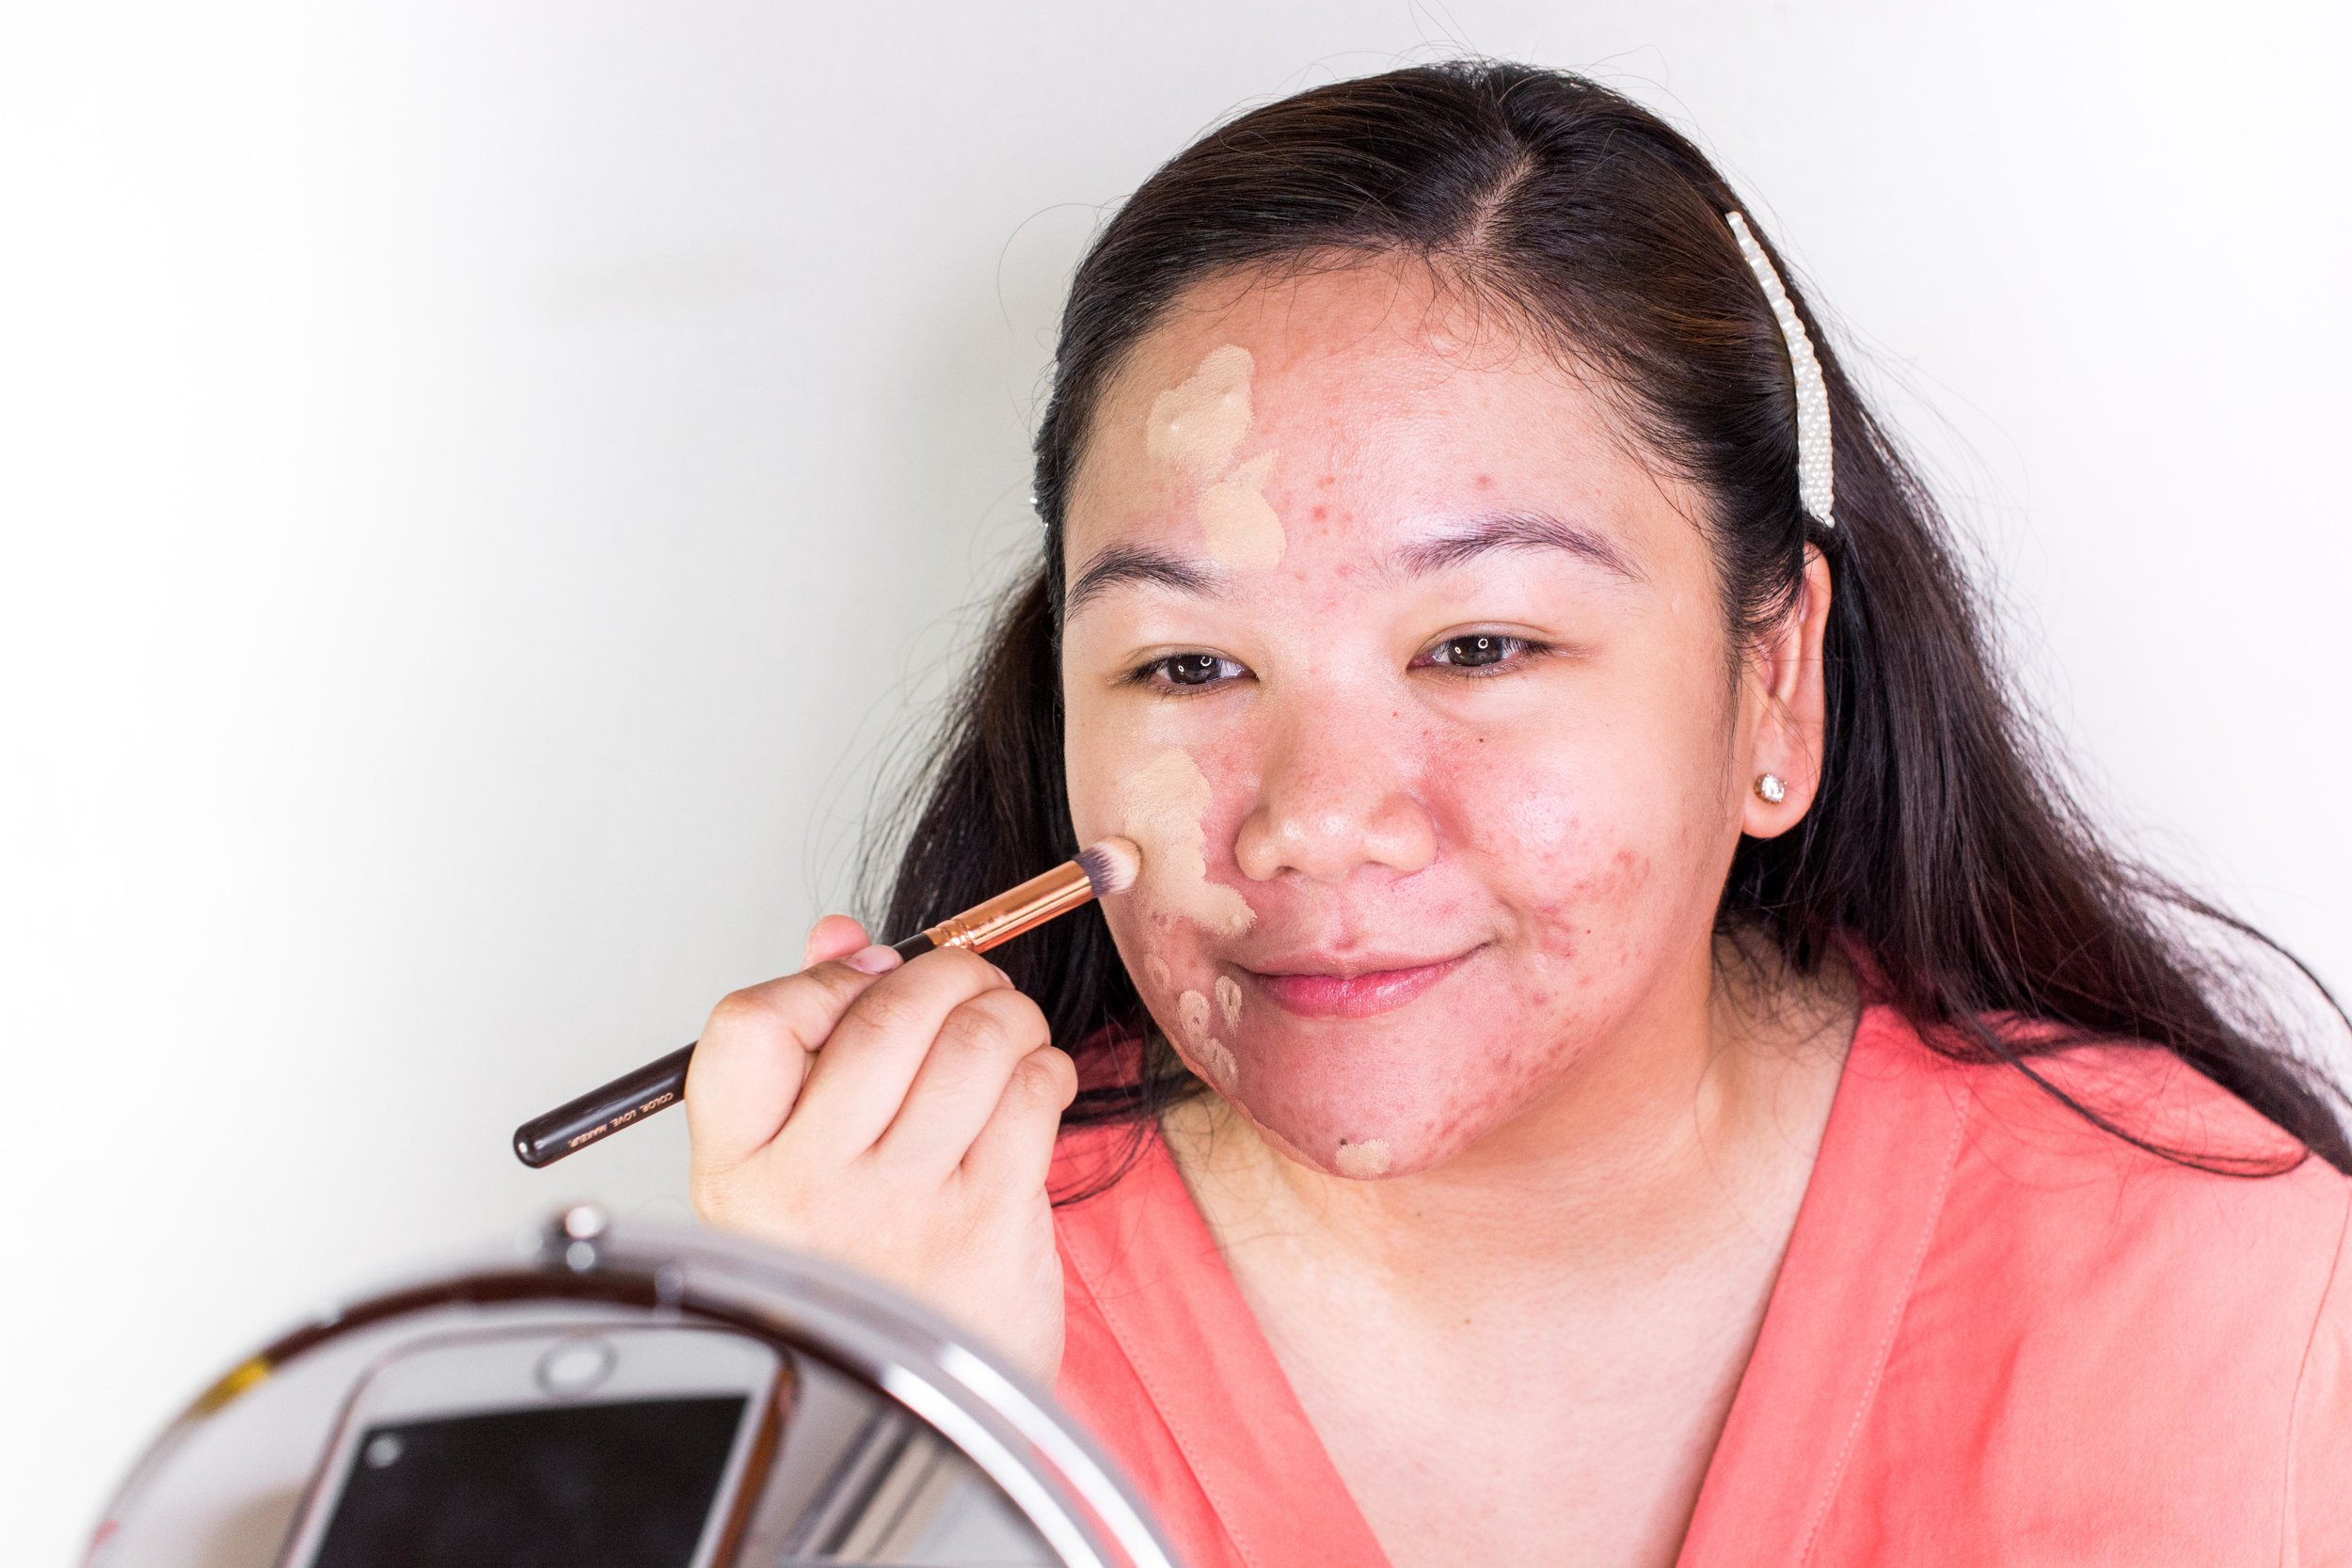 Blend, blend, blend with my Zoeva Concealer Buffer Brush